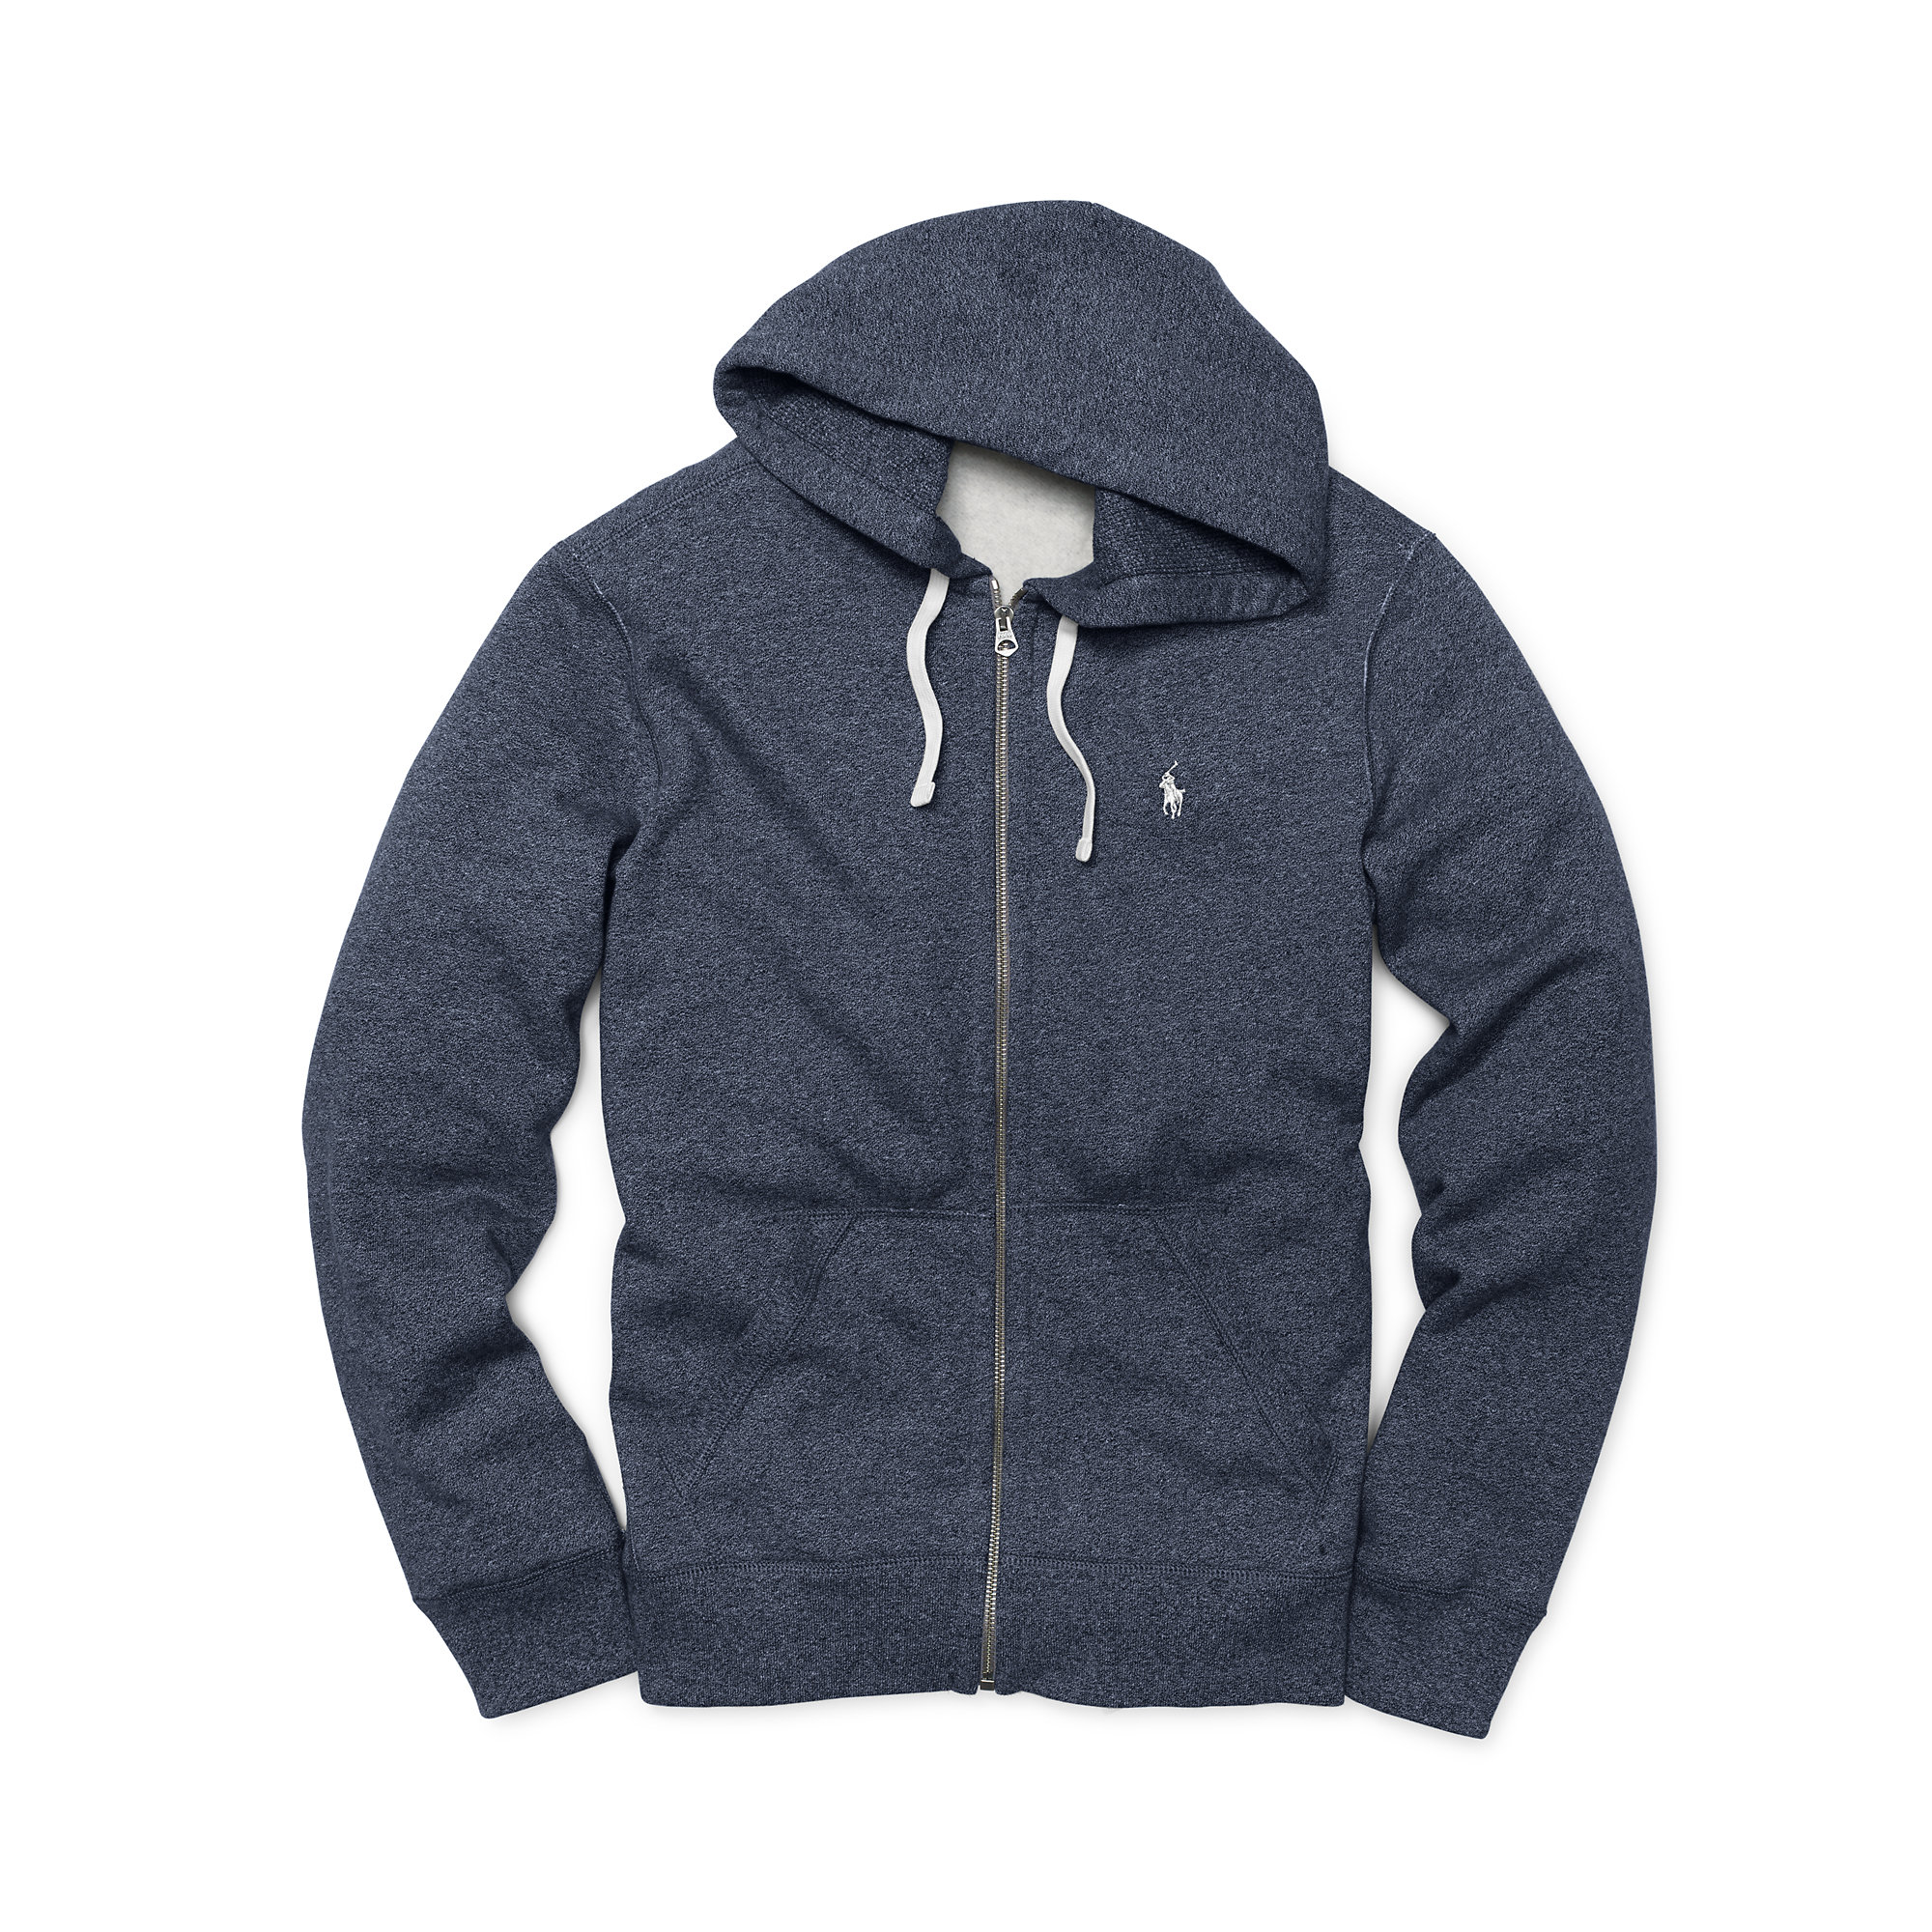 lyst polo ralph lauren fleece full zip hoodie in blue for men. Black Bedroom Furniture Sets. Home Design Ideas